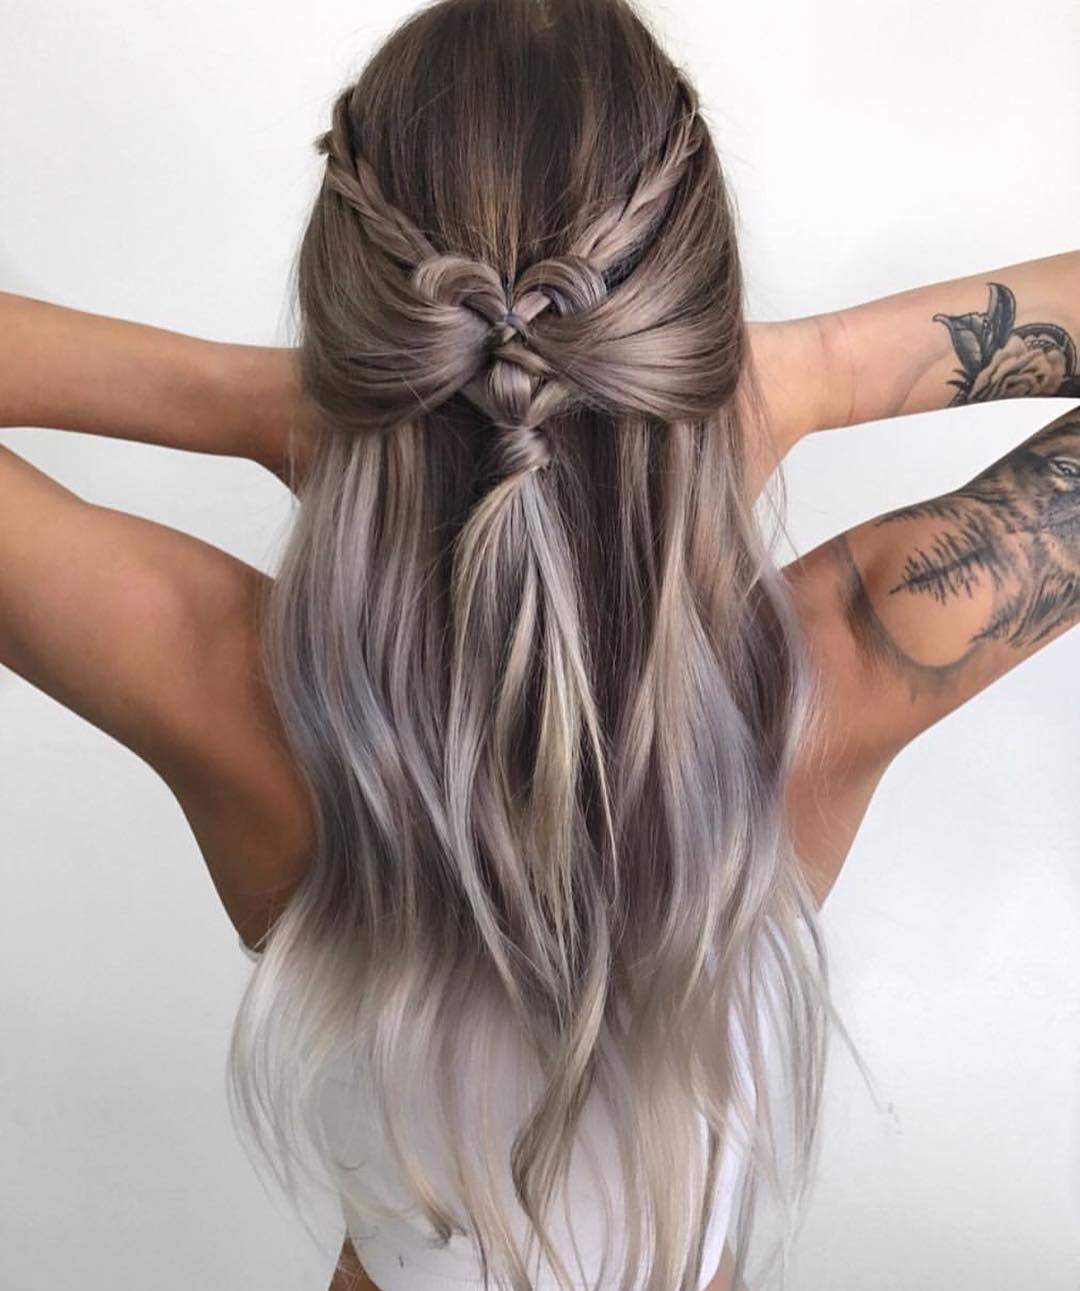 10 braided hairstyles for long hair - weddings, festivals & holiday